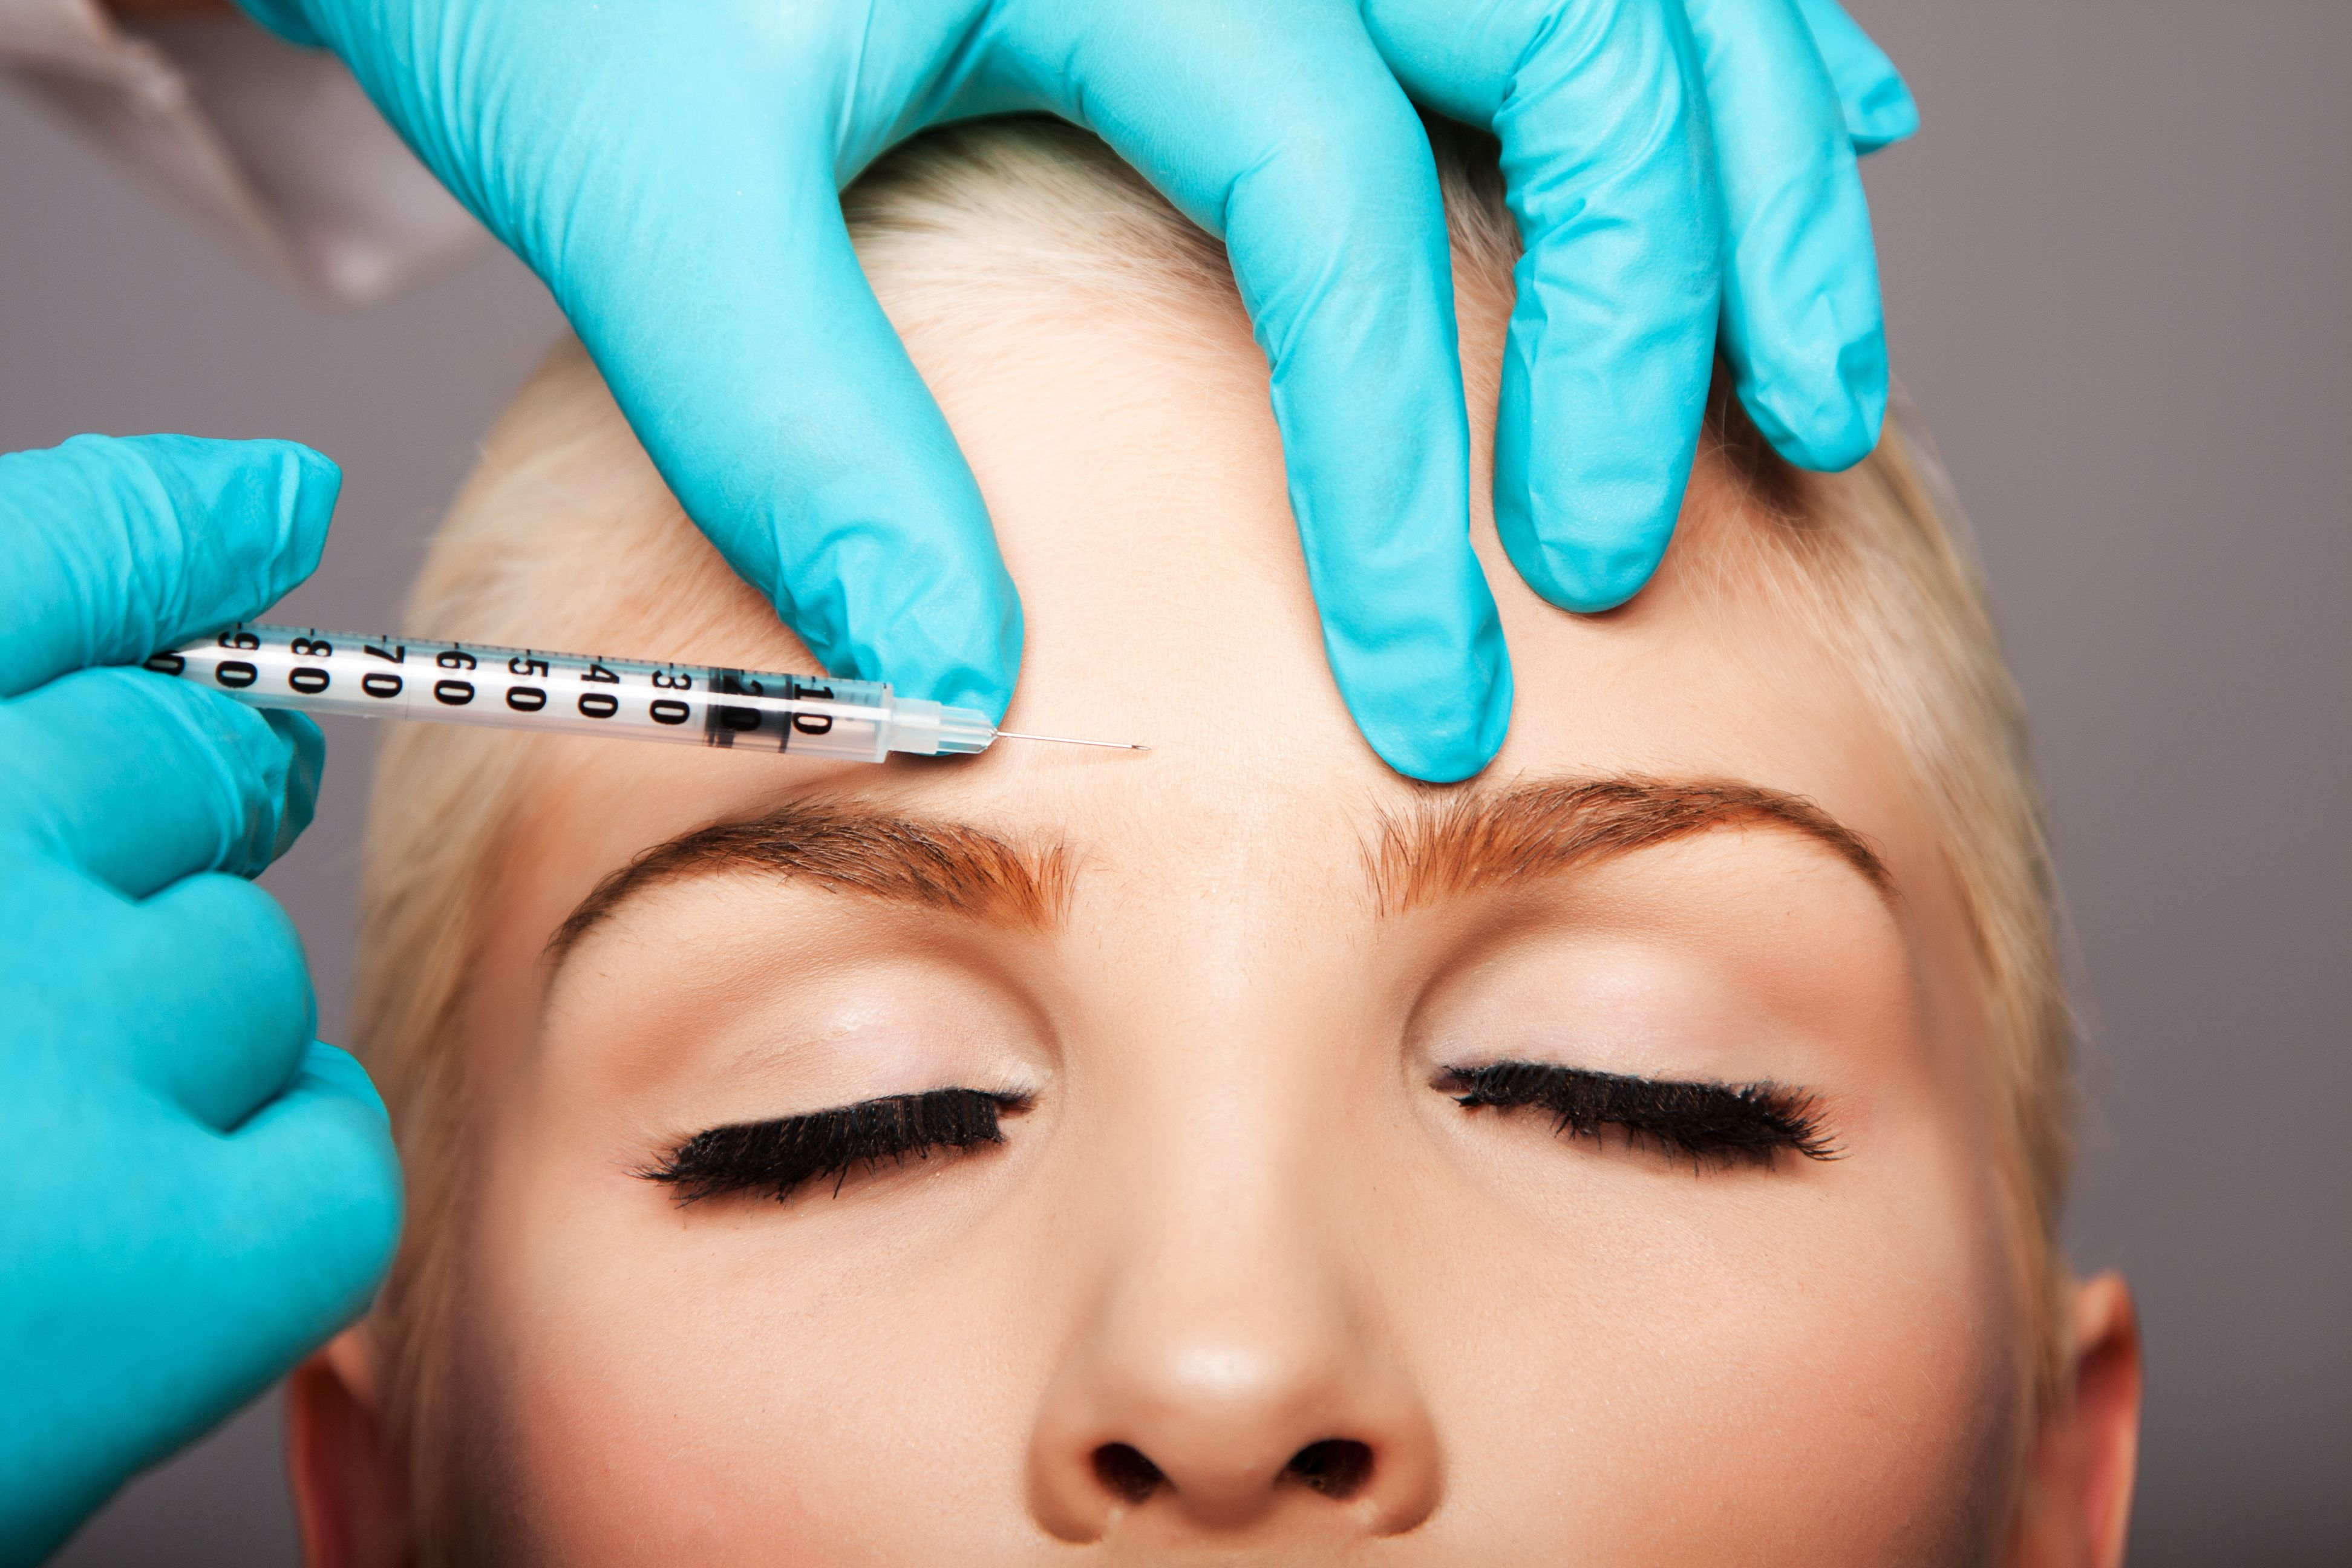 How Do Botox Injections Work? Uses, Side Effects, Cost